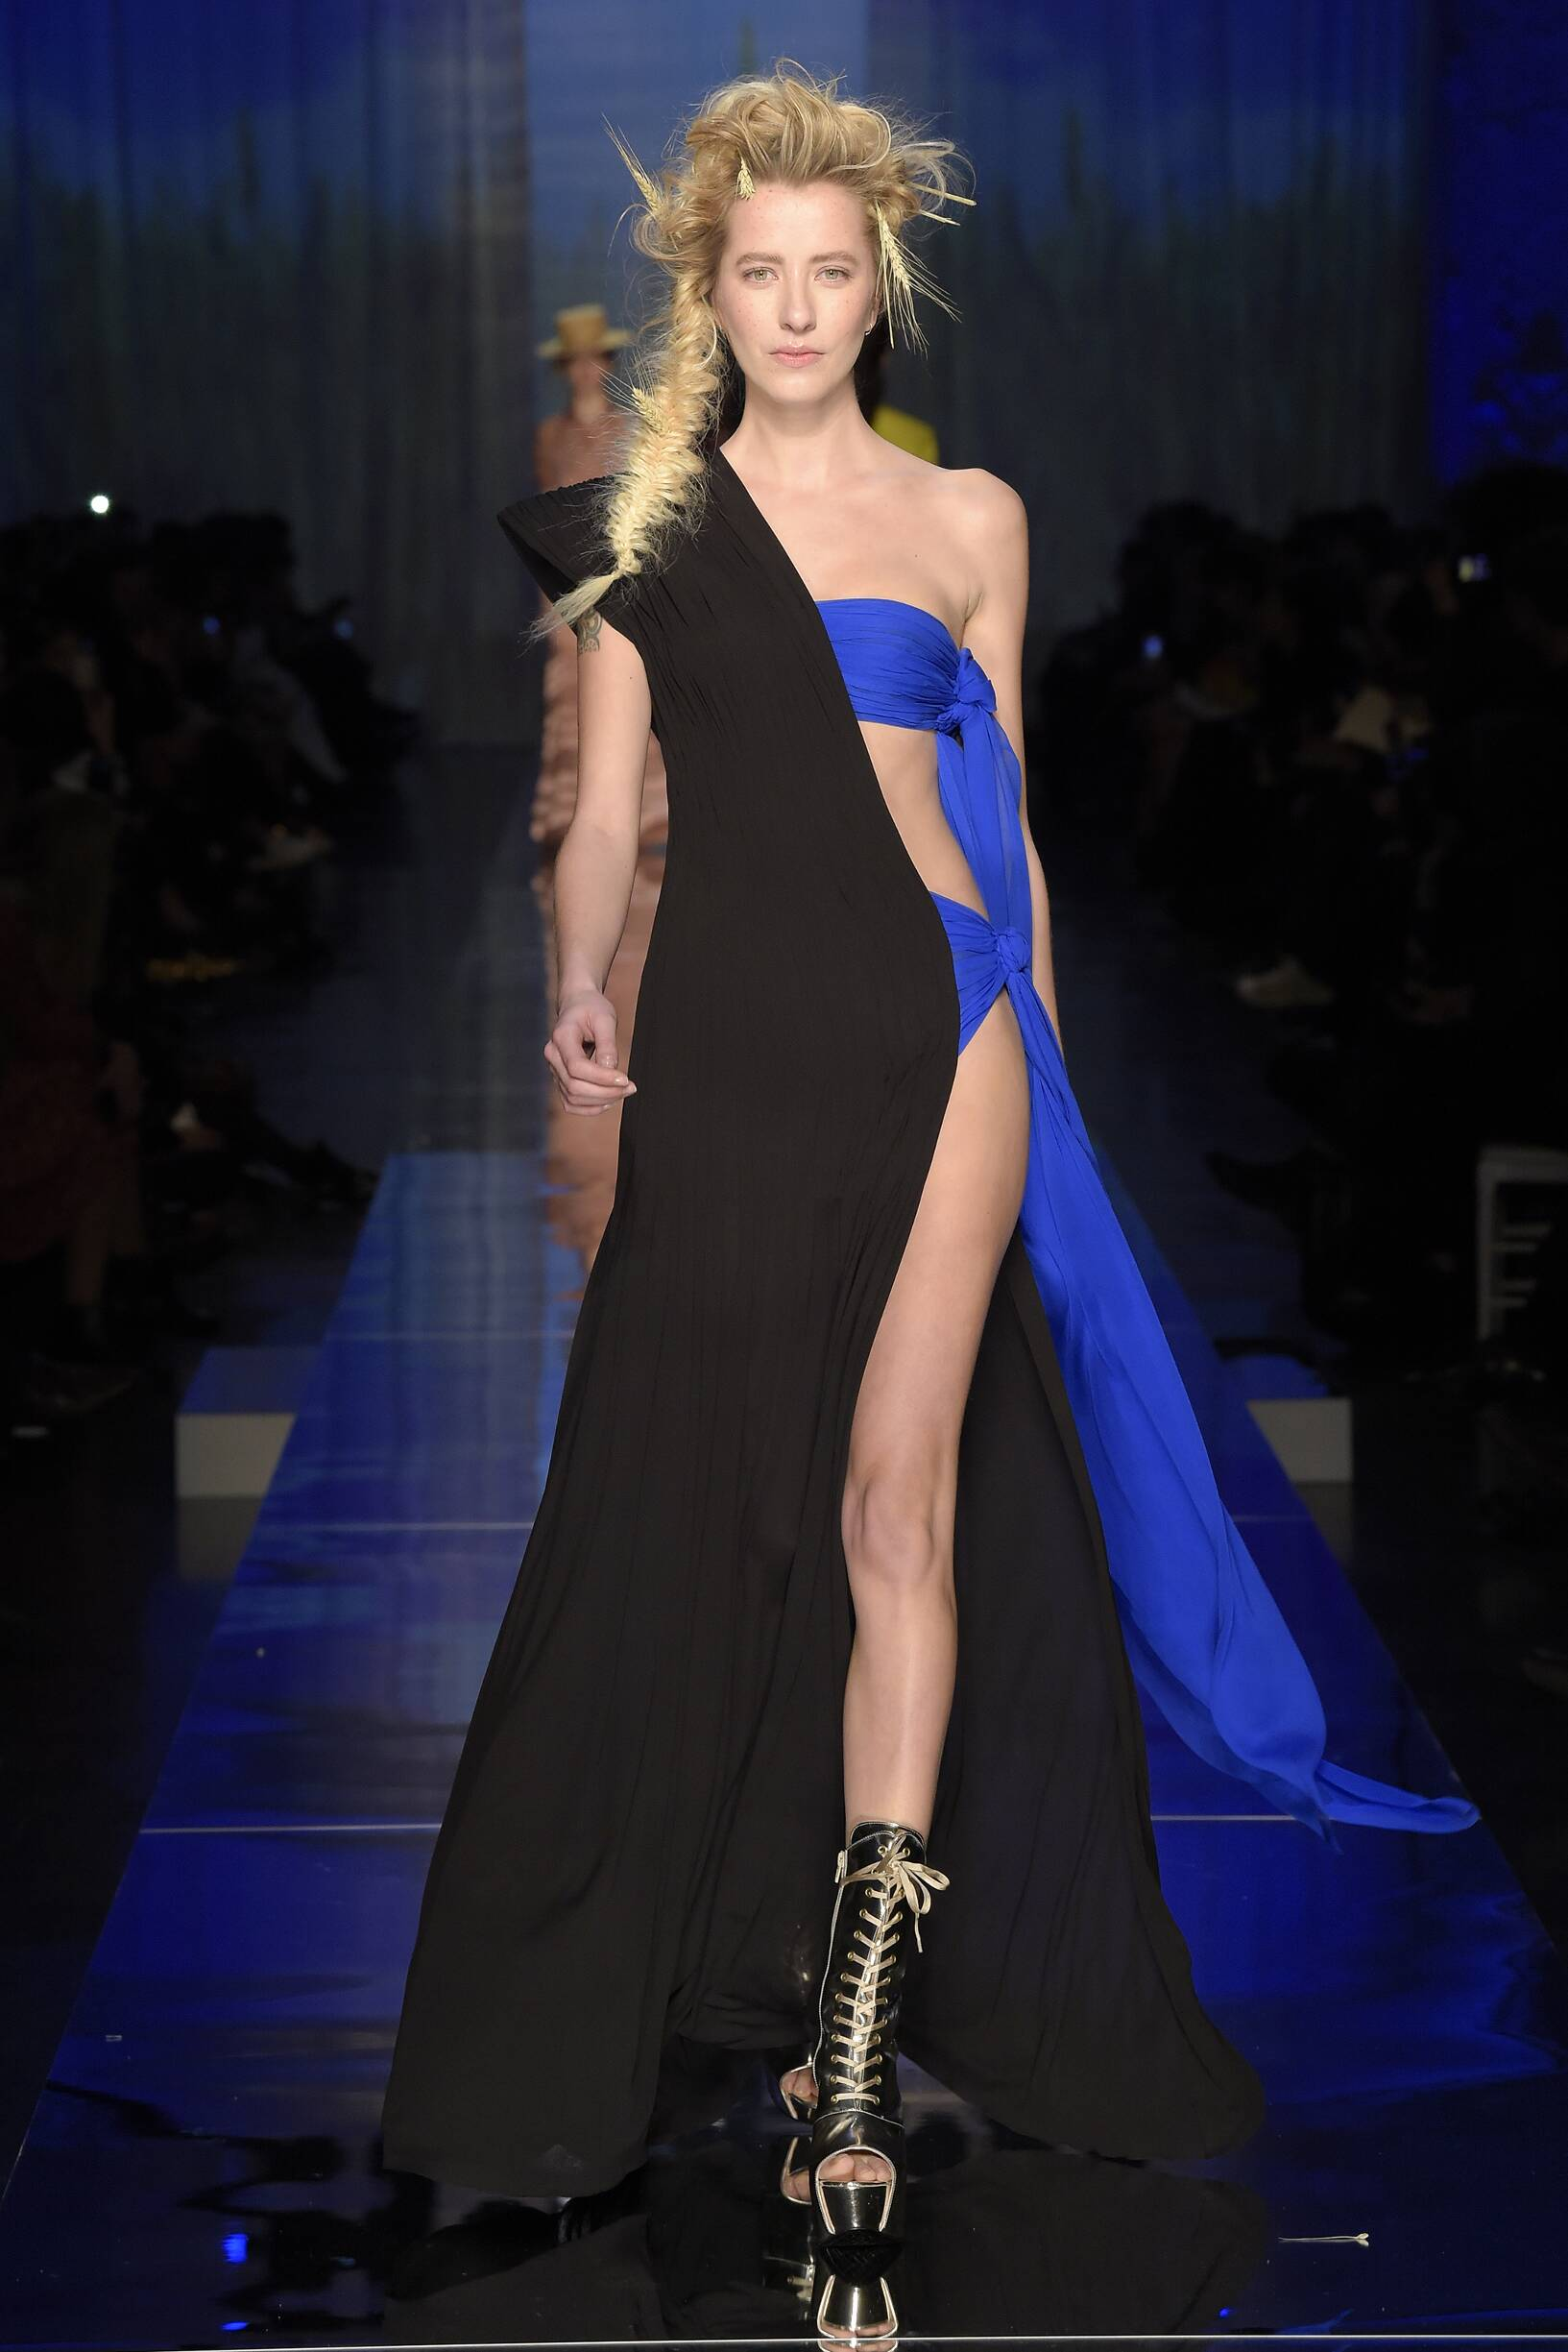 2017 Woman Jean Paul Gaultier Haute Couture Summer Catwalk